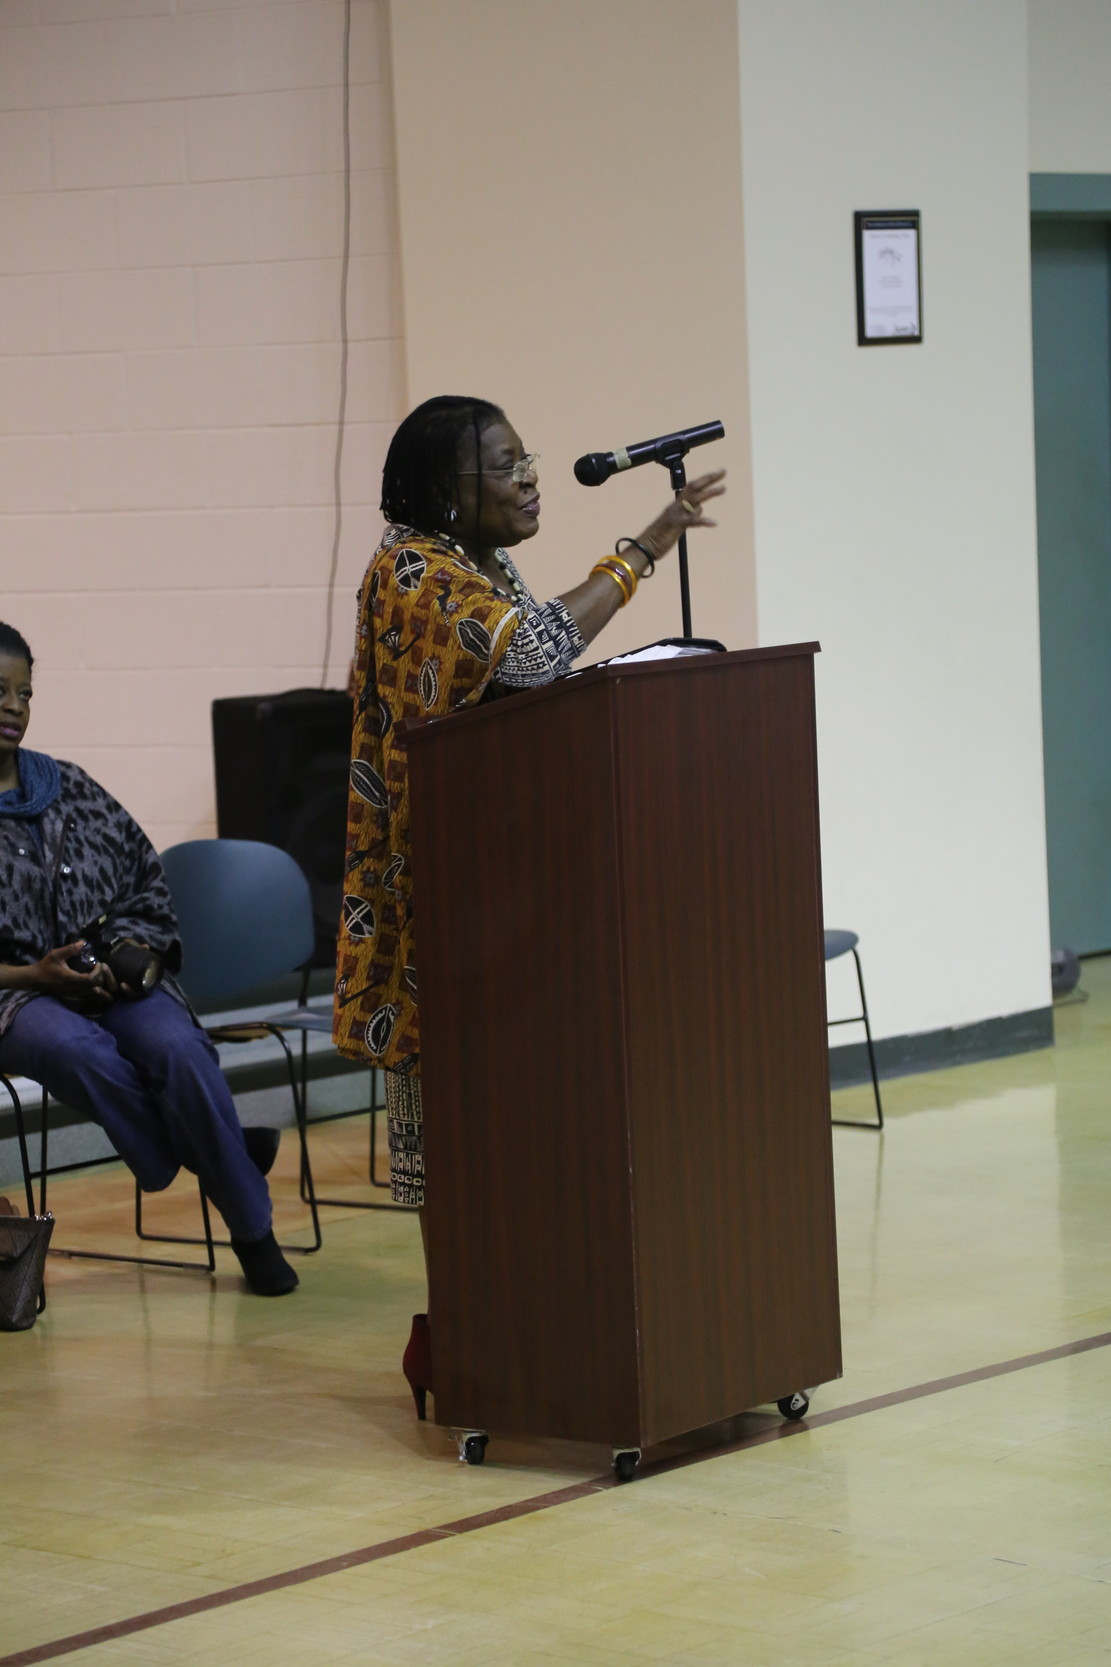 Former South Carolina senator Maggie Glover speaks to mothers at an event called Muffins with Mom, hosted by Head Start, at the North HOPE Center on Wednesday.